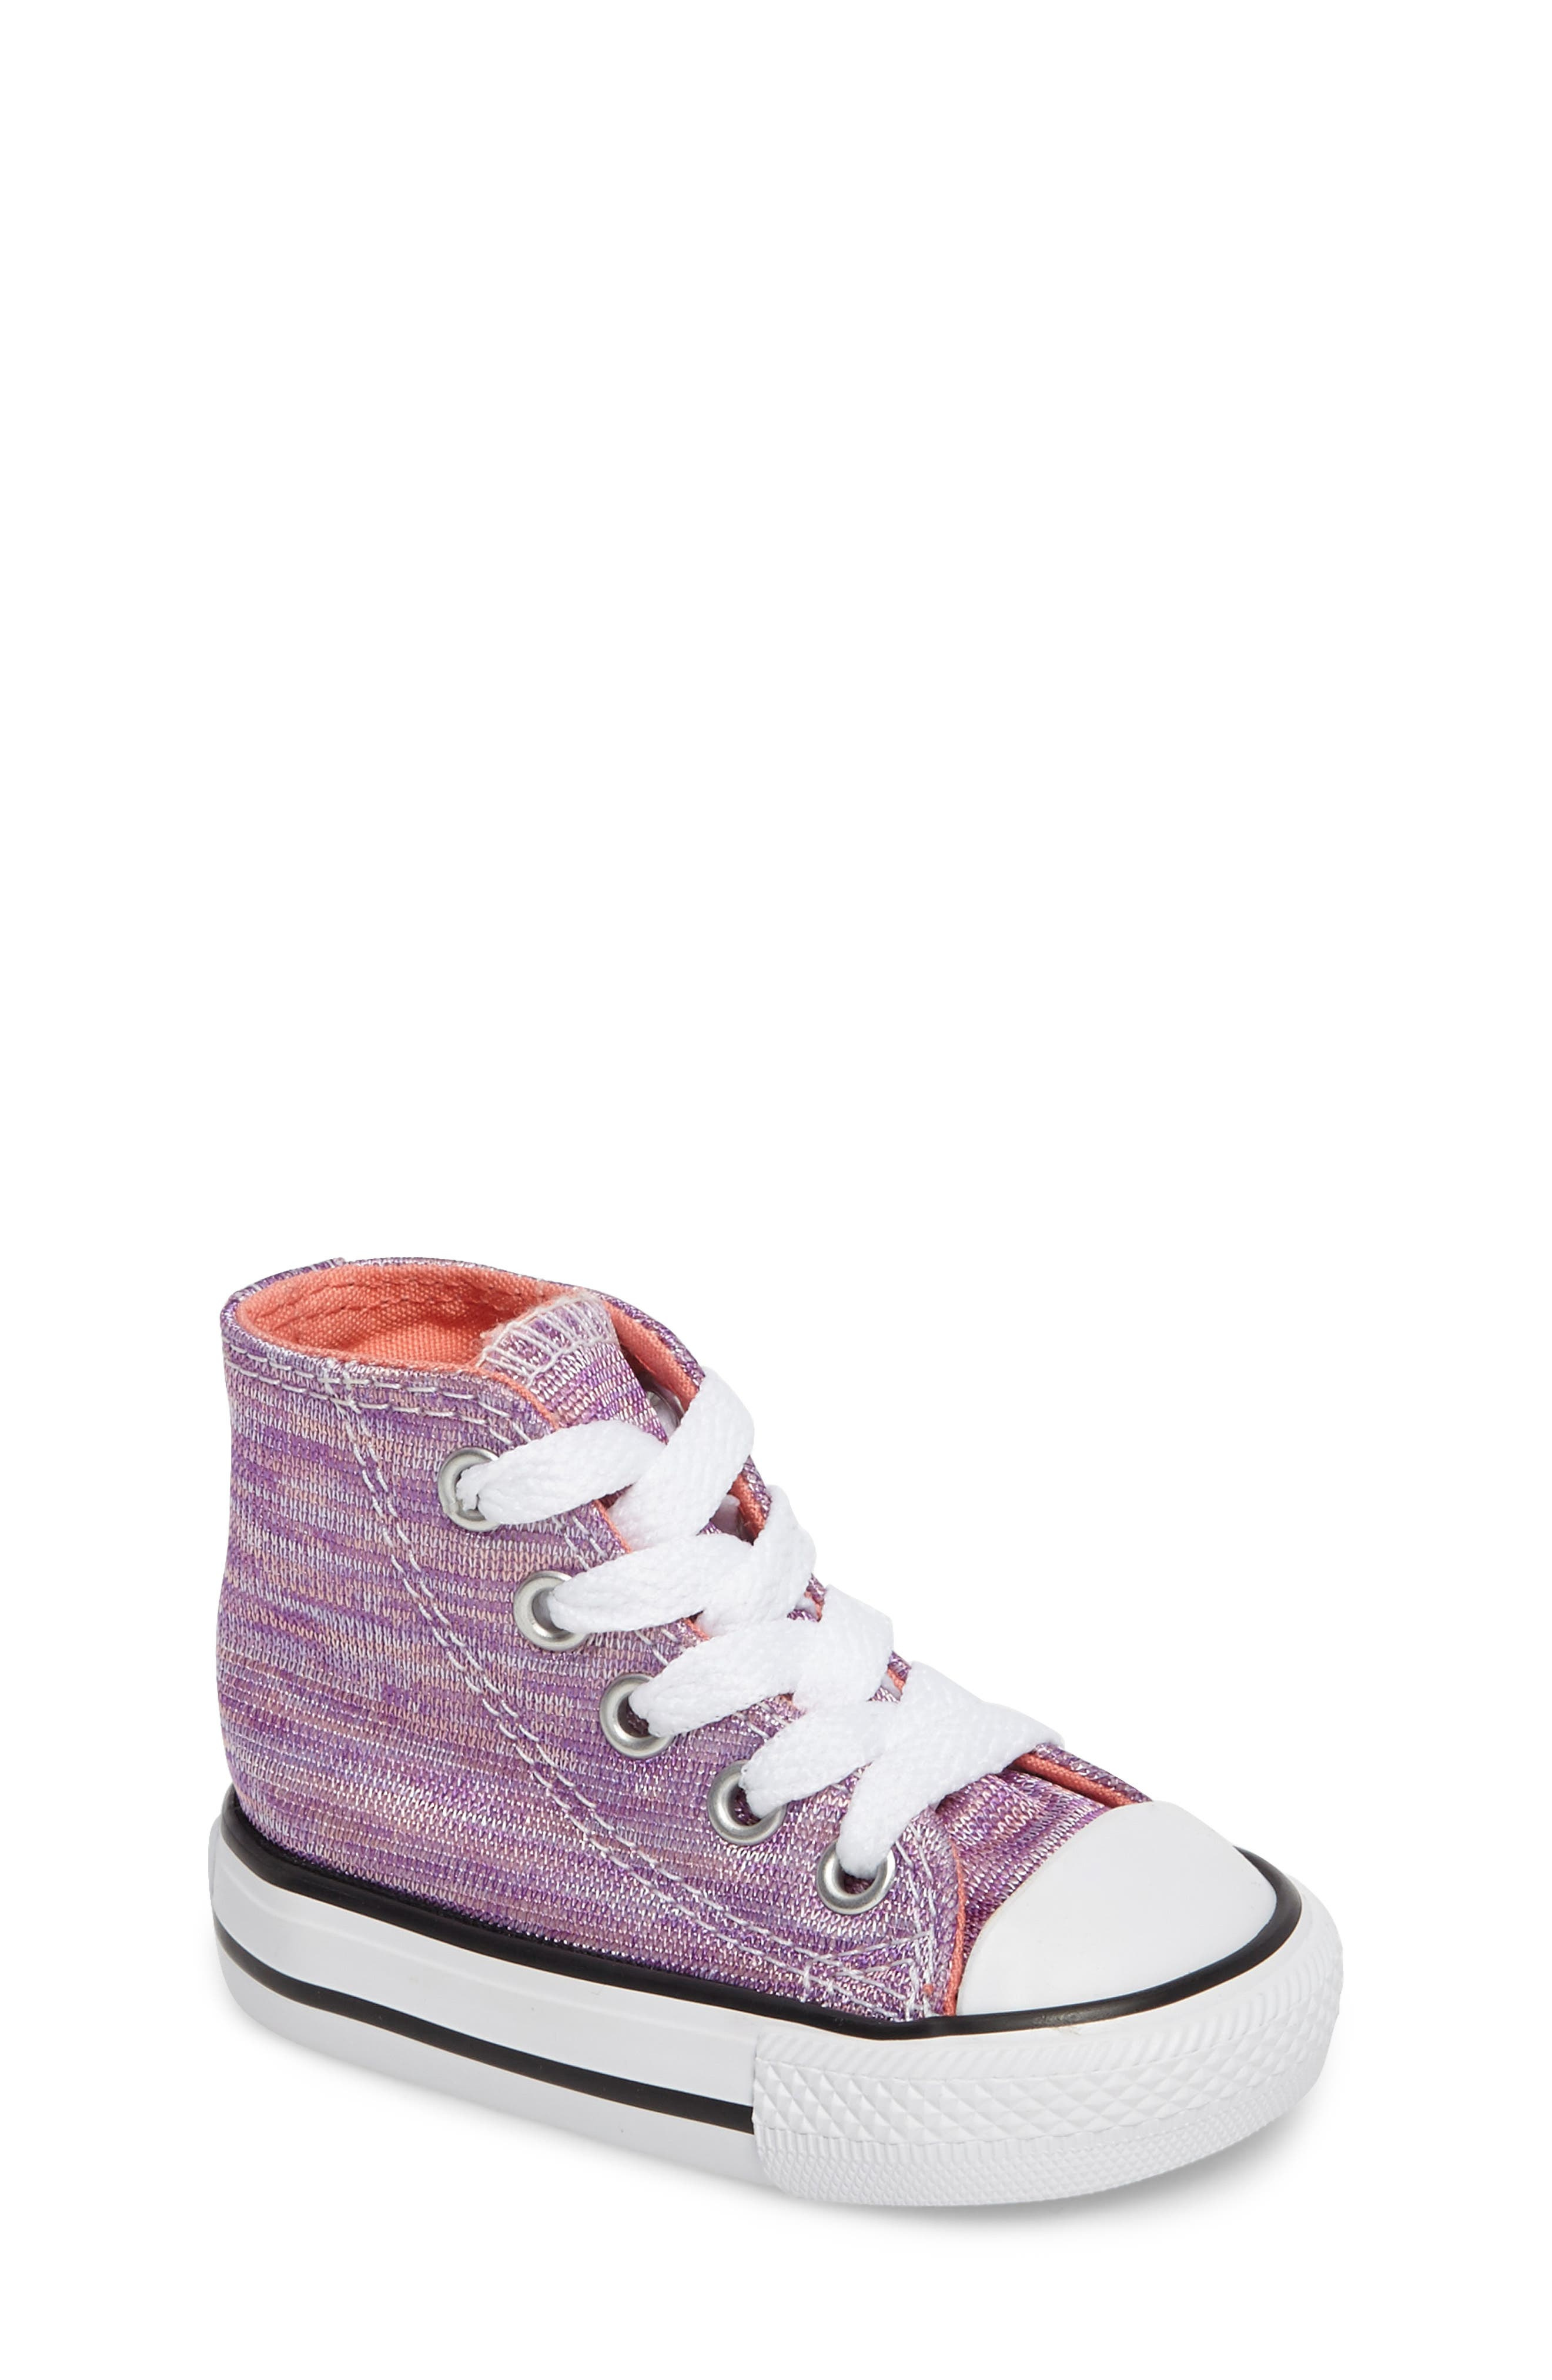 Chuck Taylor<sup>®</sup> All Star<sup>®</sup> Knit High Top Sneaker,                         Main,                         color, Bright Violet Textile